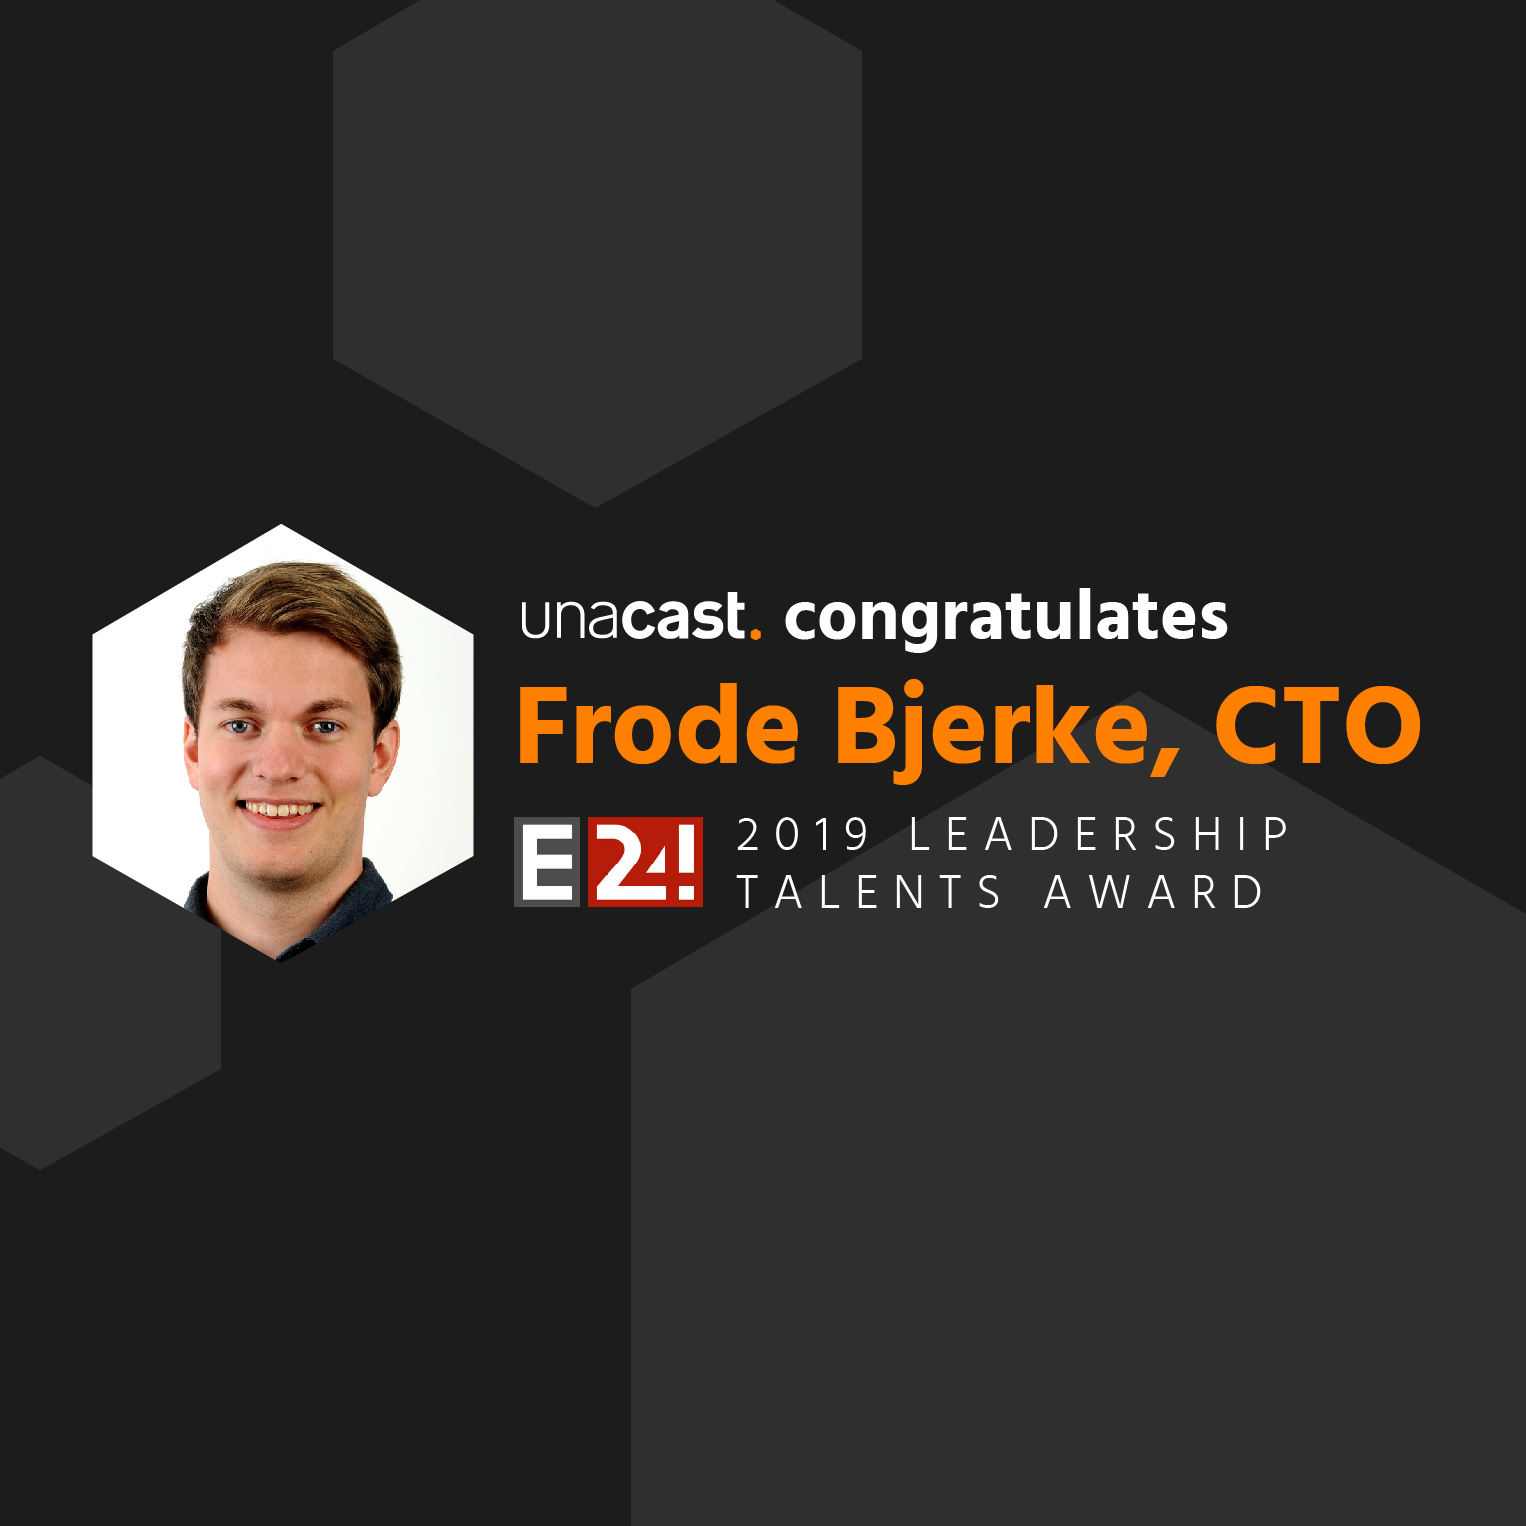 CTO Frode Bjerke Named to 2019 Leadership Talents Award